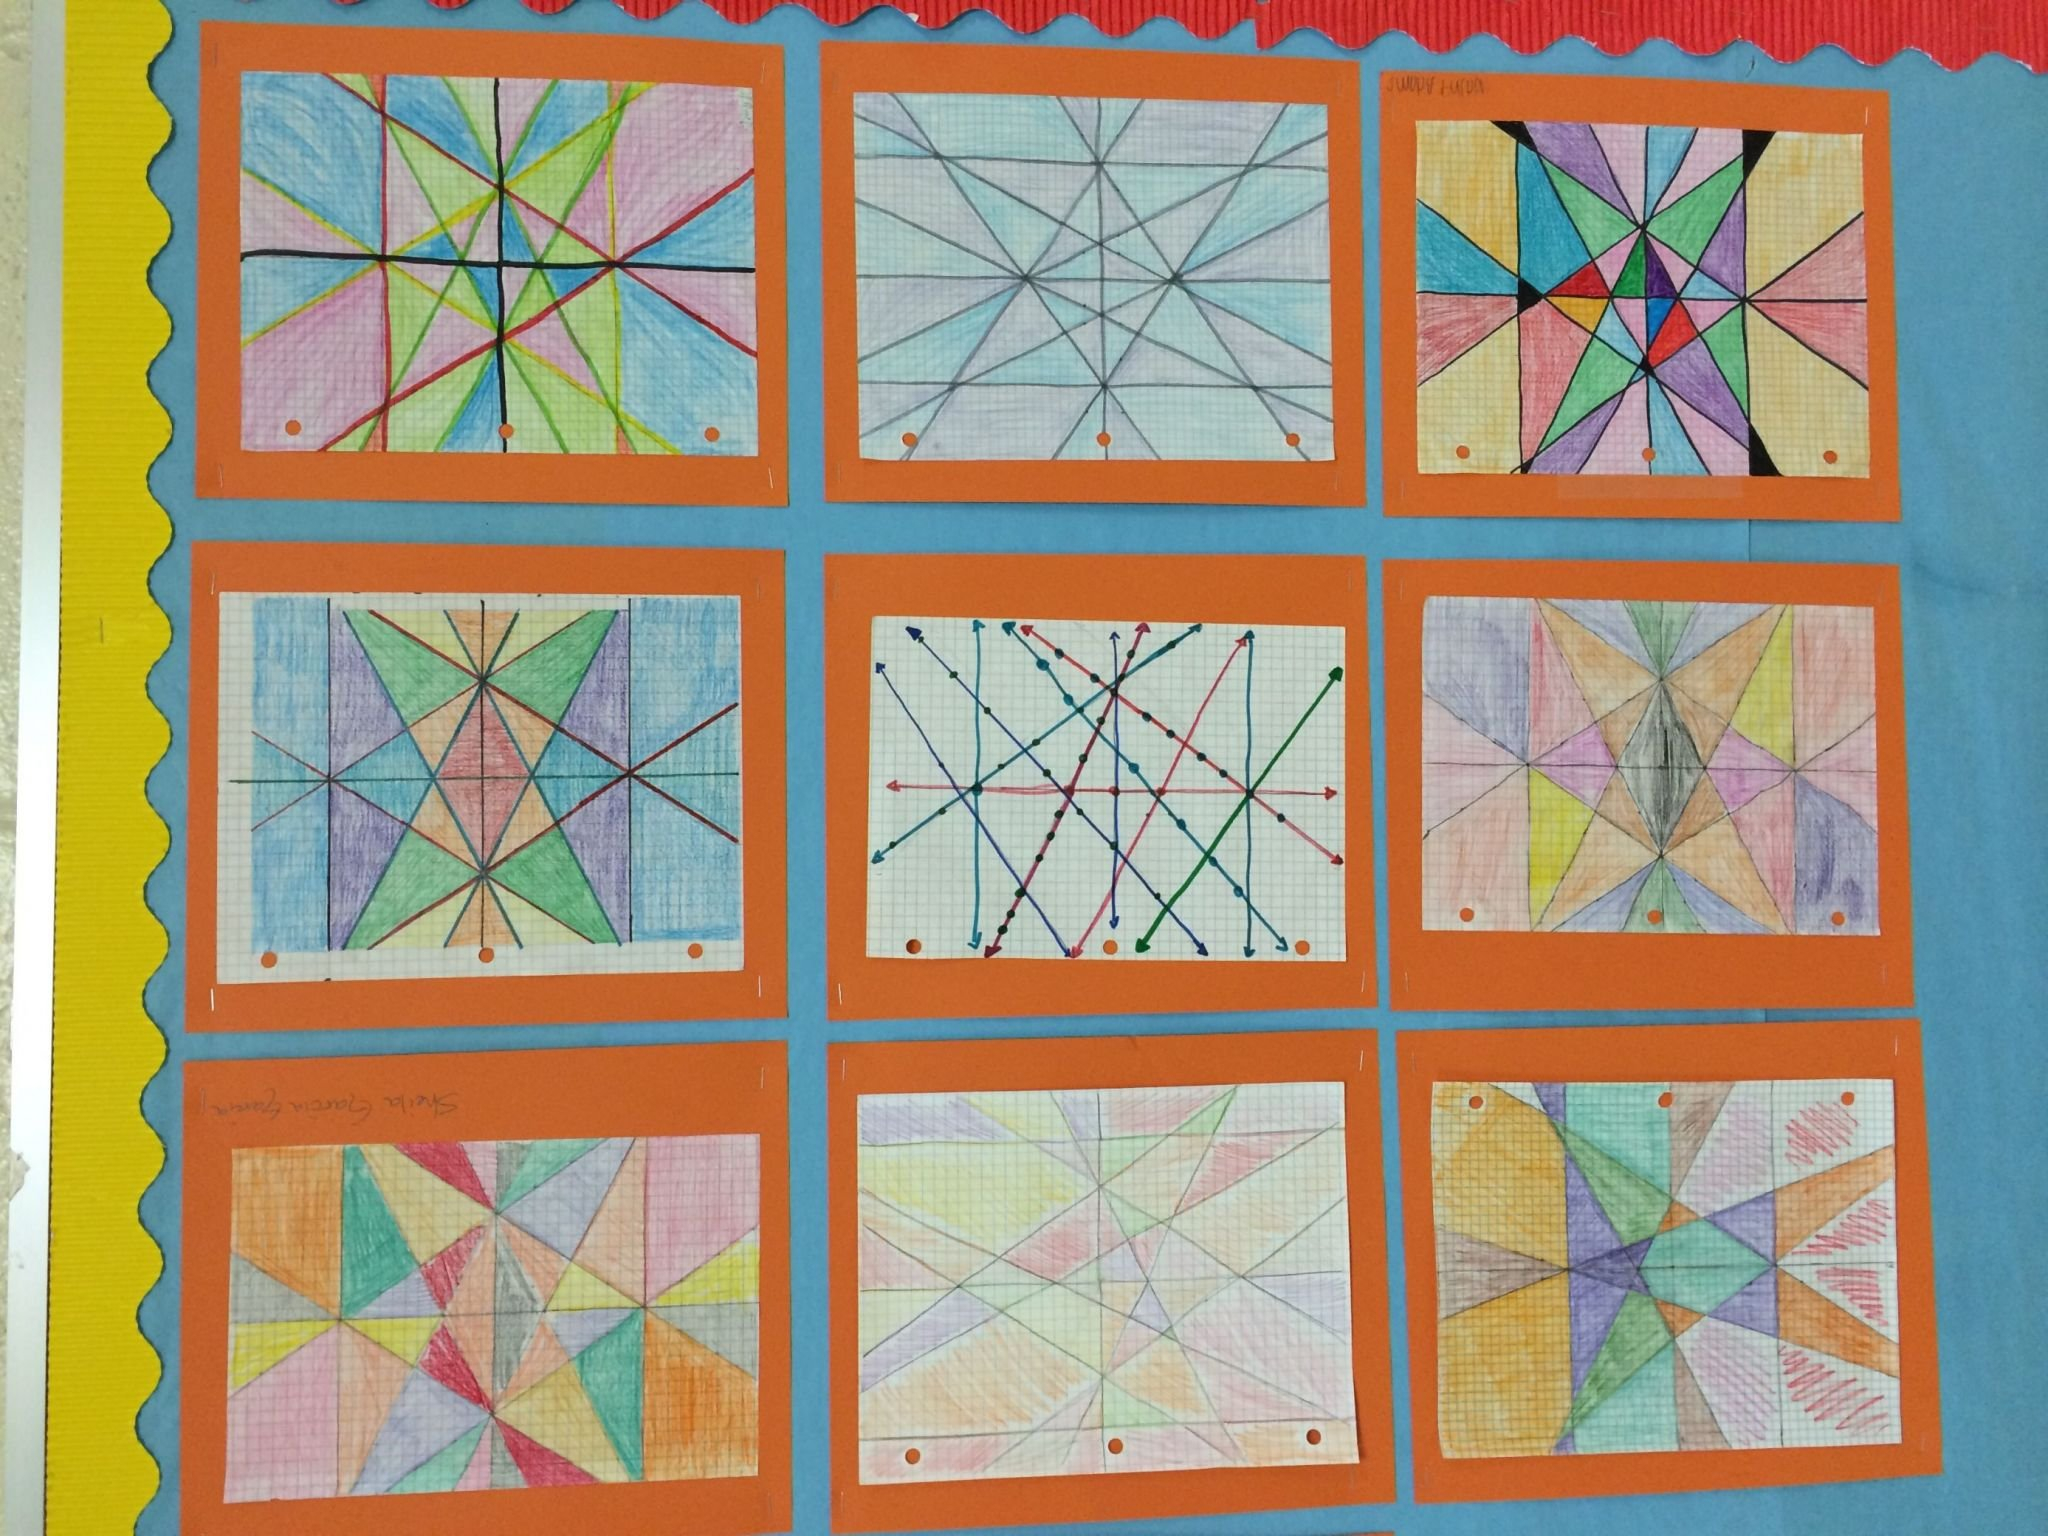 Stained Glass Blueprints Math Worksheet Answers  Briefencounters Along With Stained Glass Blueprints Worksheet Answer Key